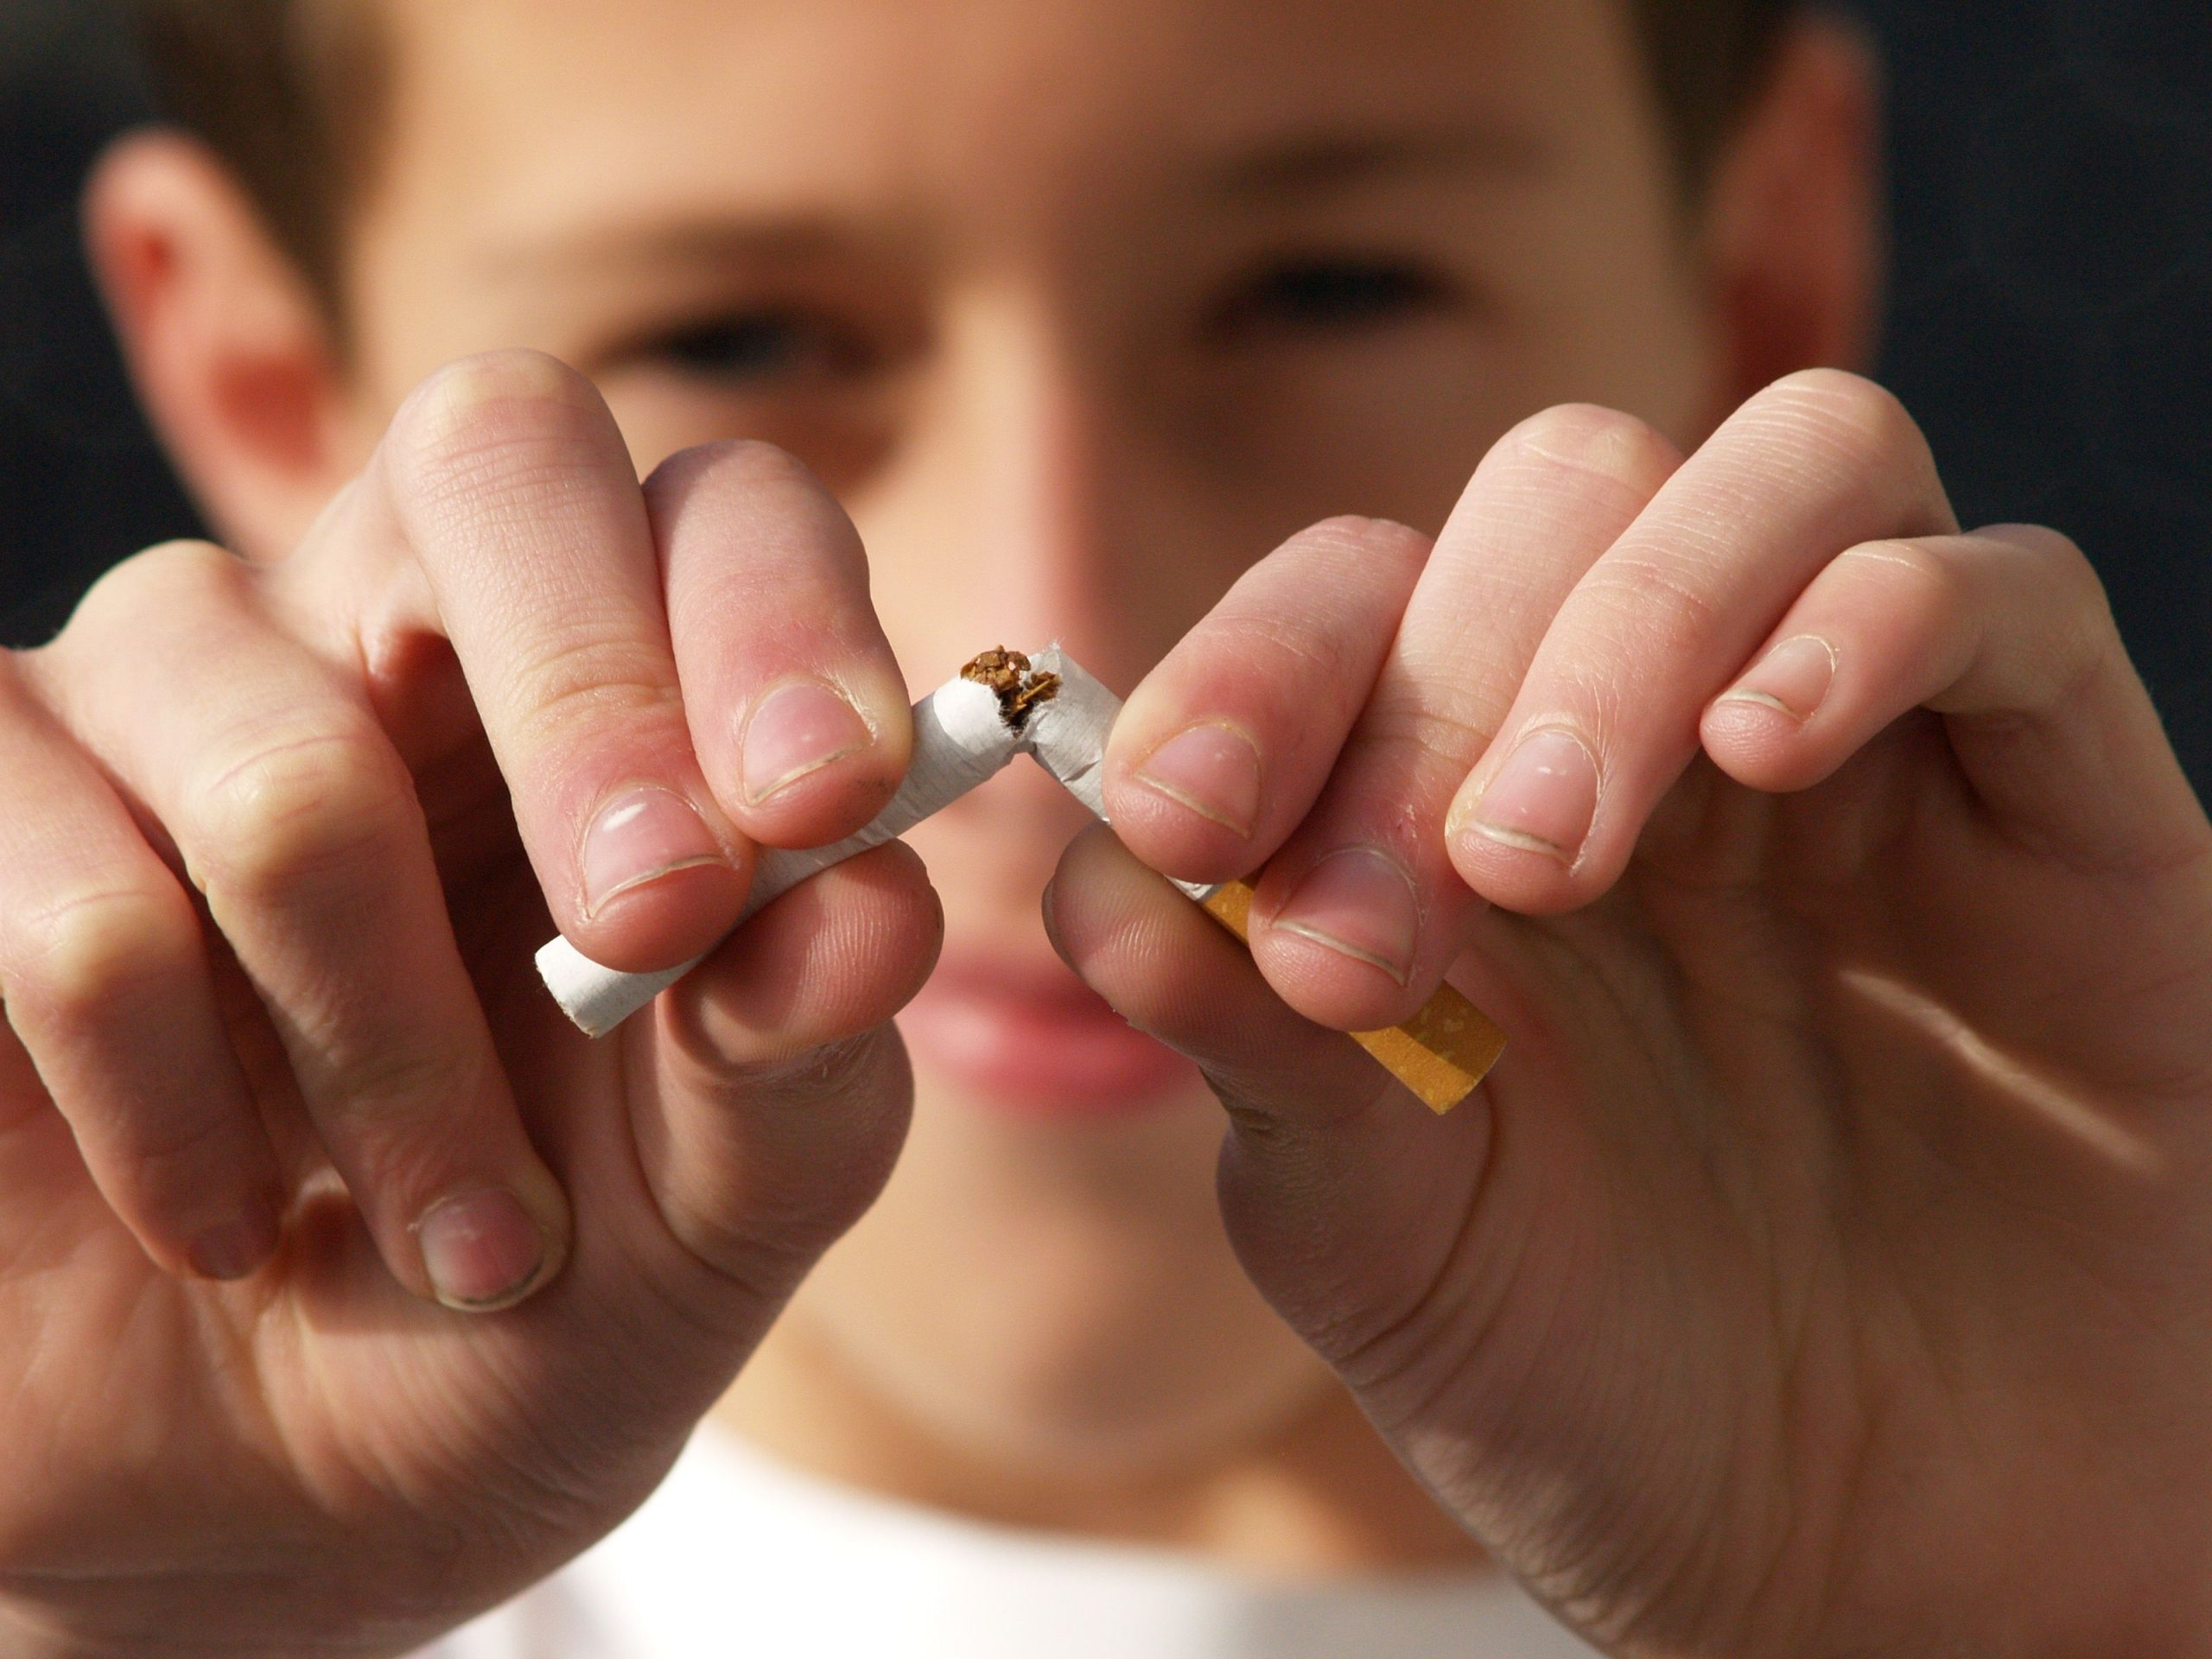 Dentist in Arlington | Tobacco & Your Teeth: The Risks of Chewing and Smoking